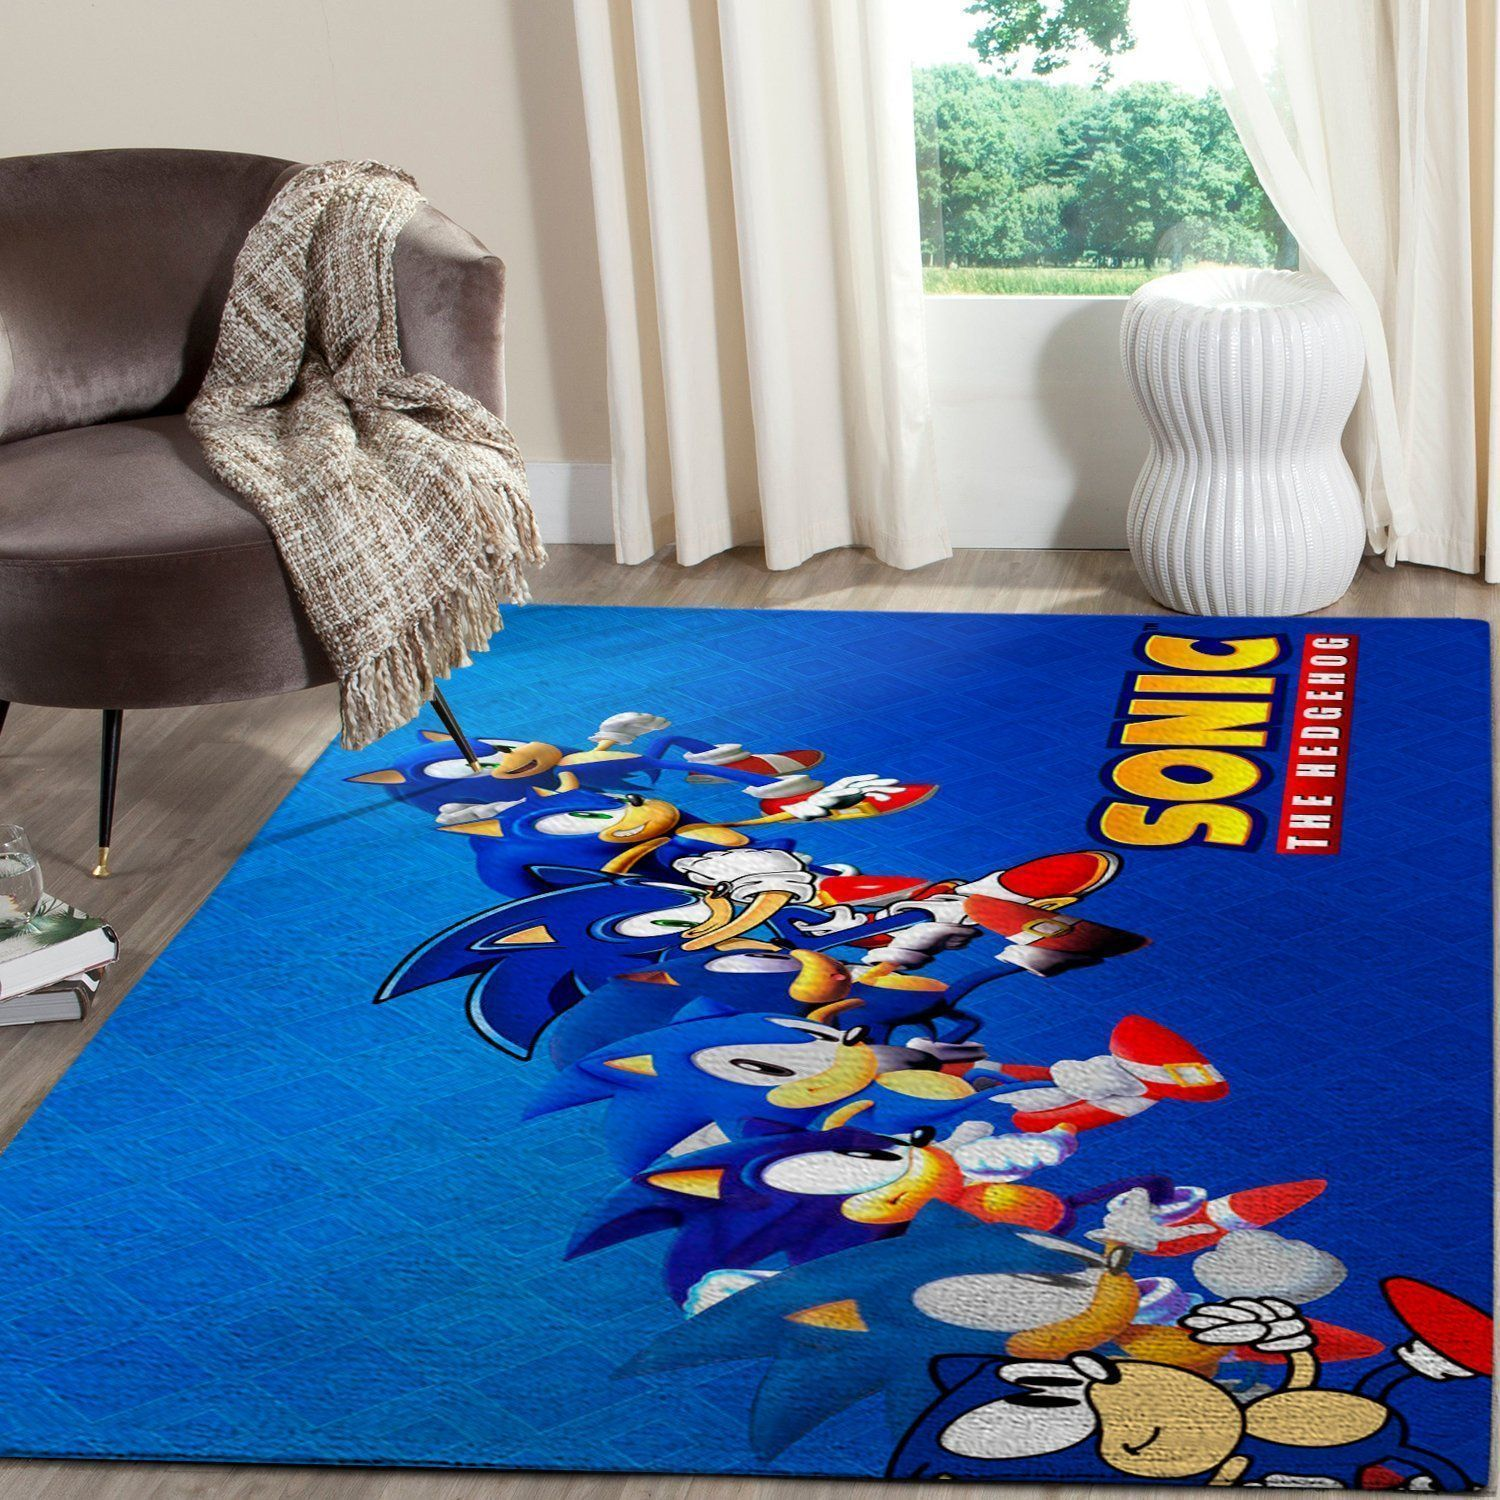 Sonic the Hedgehog Area Rug / Gaming Carpet, Gamer Living Room Rugs, Floor Decor 10118